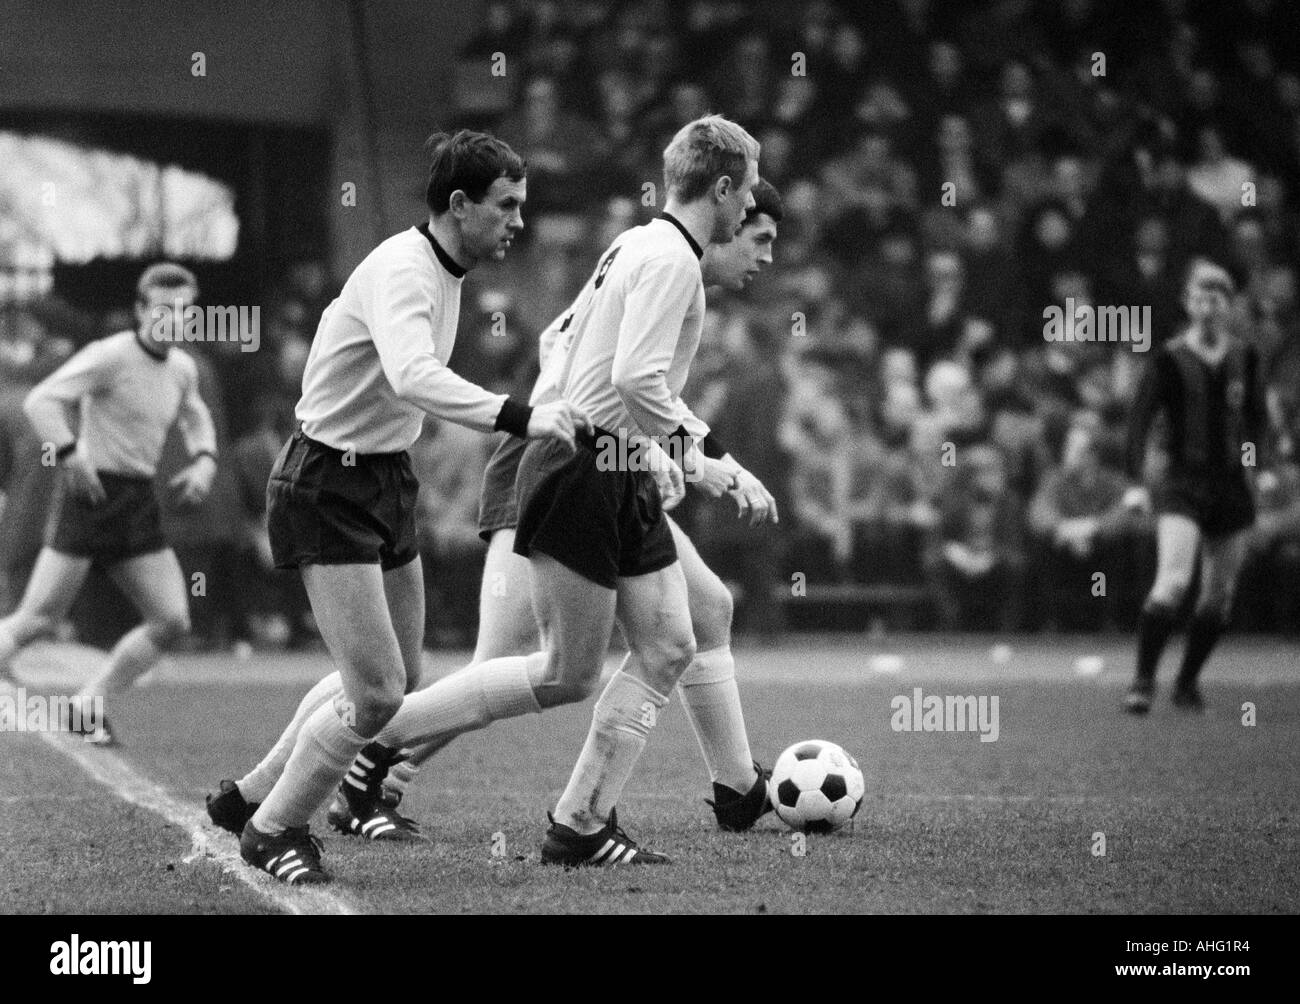 Lothar Emmerich High Resolution Stock Photography And Images Alamy